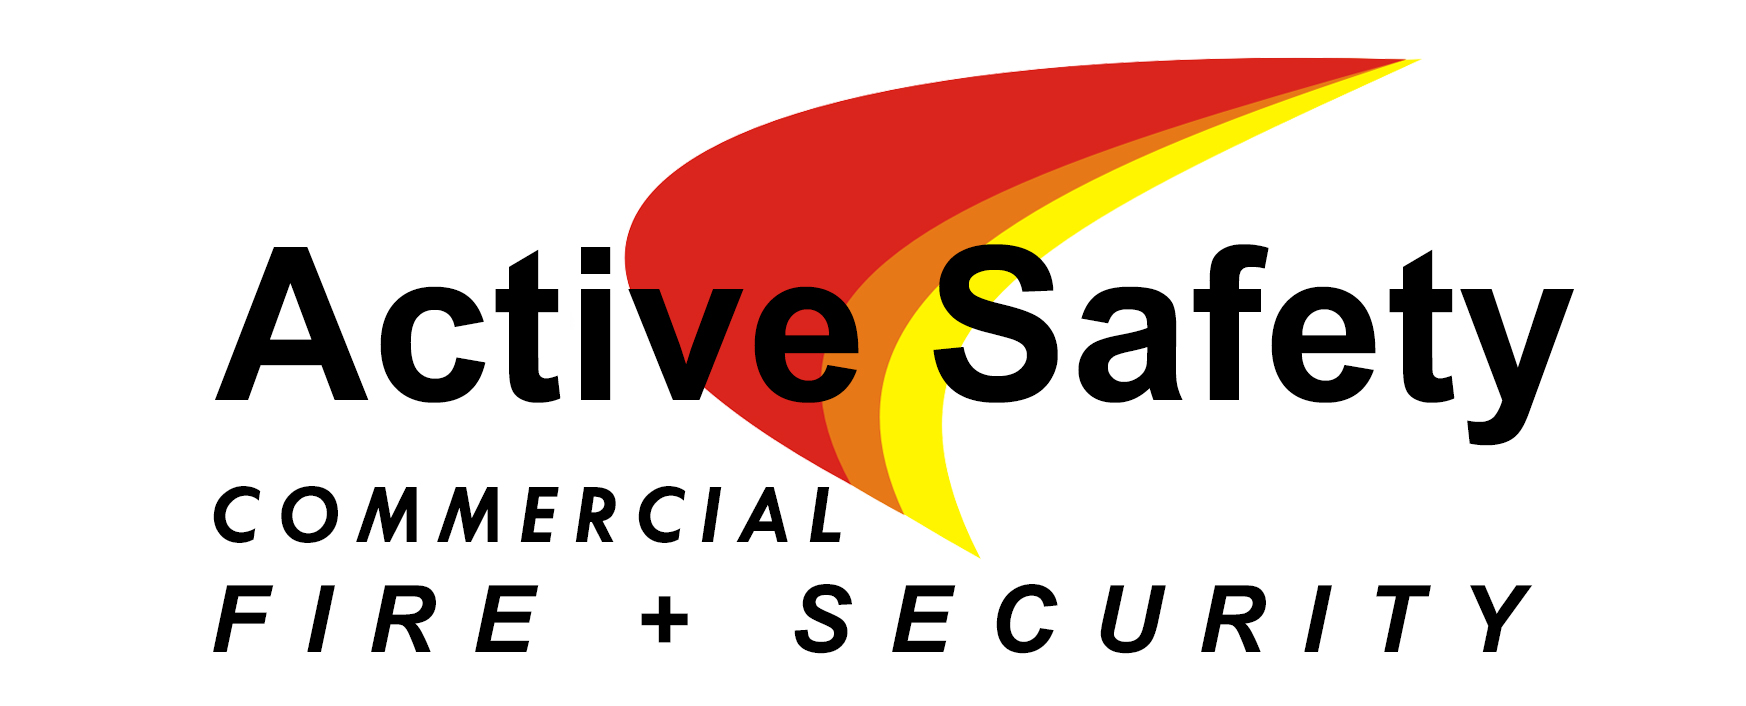 active safety business card3.jpg